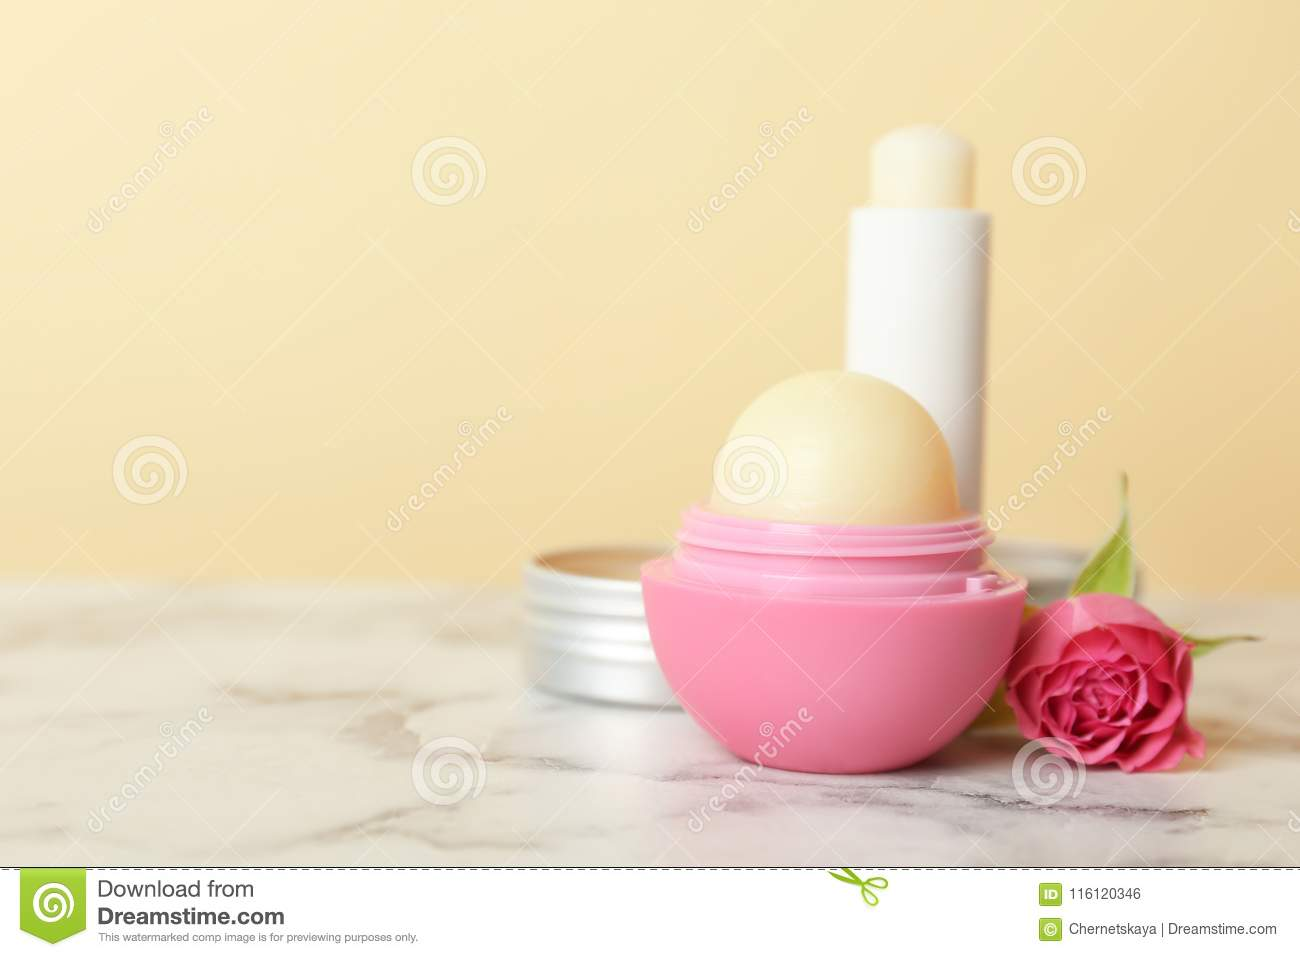 Composition with hygienic lipstick and balms